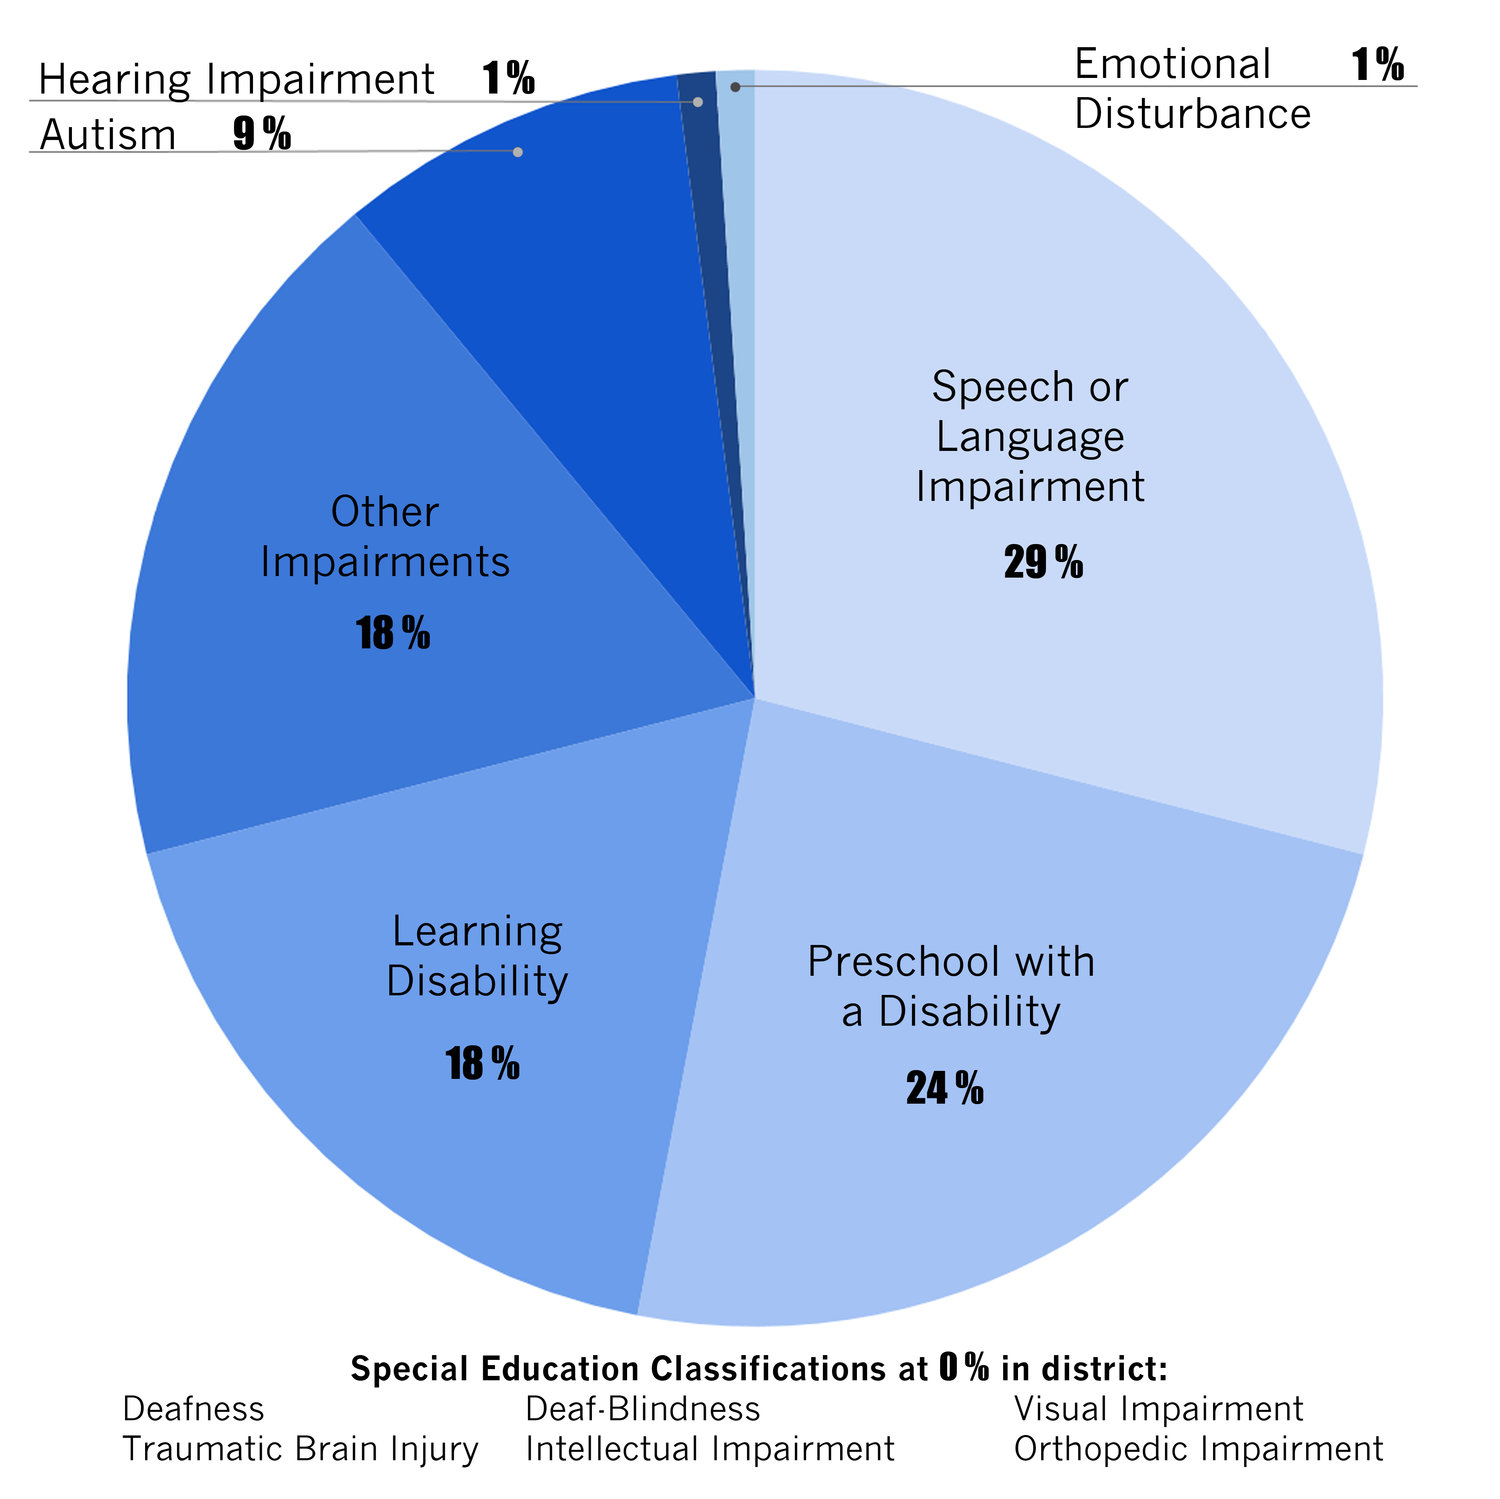 Franklin Square School District's special education population